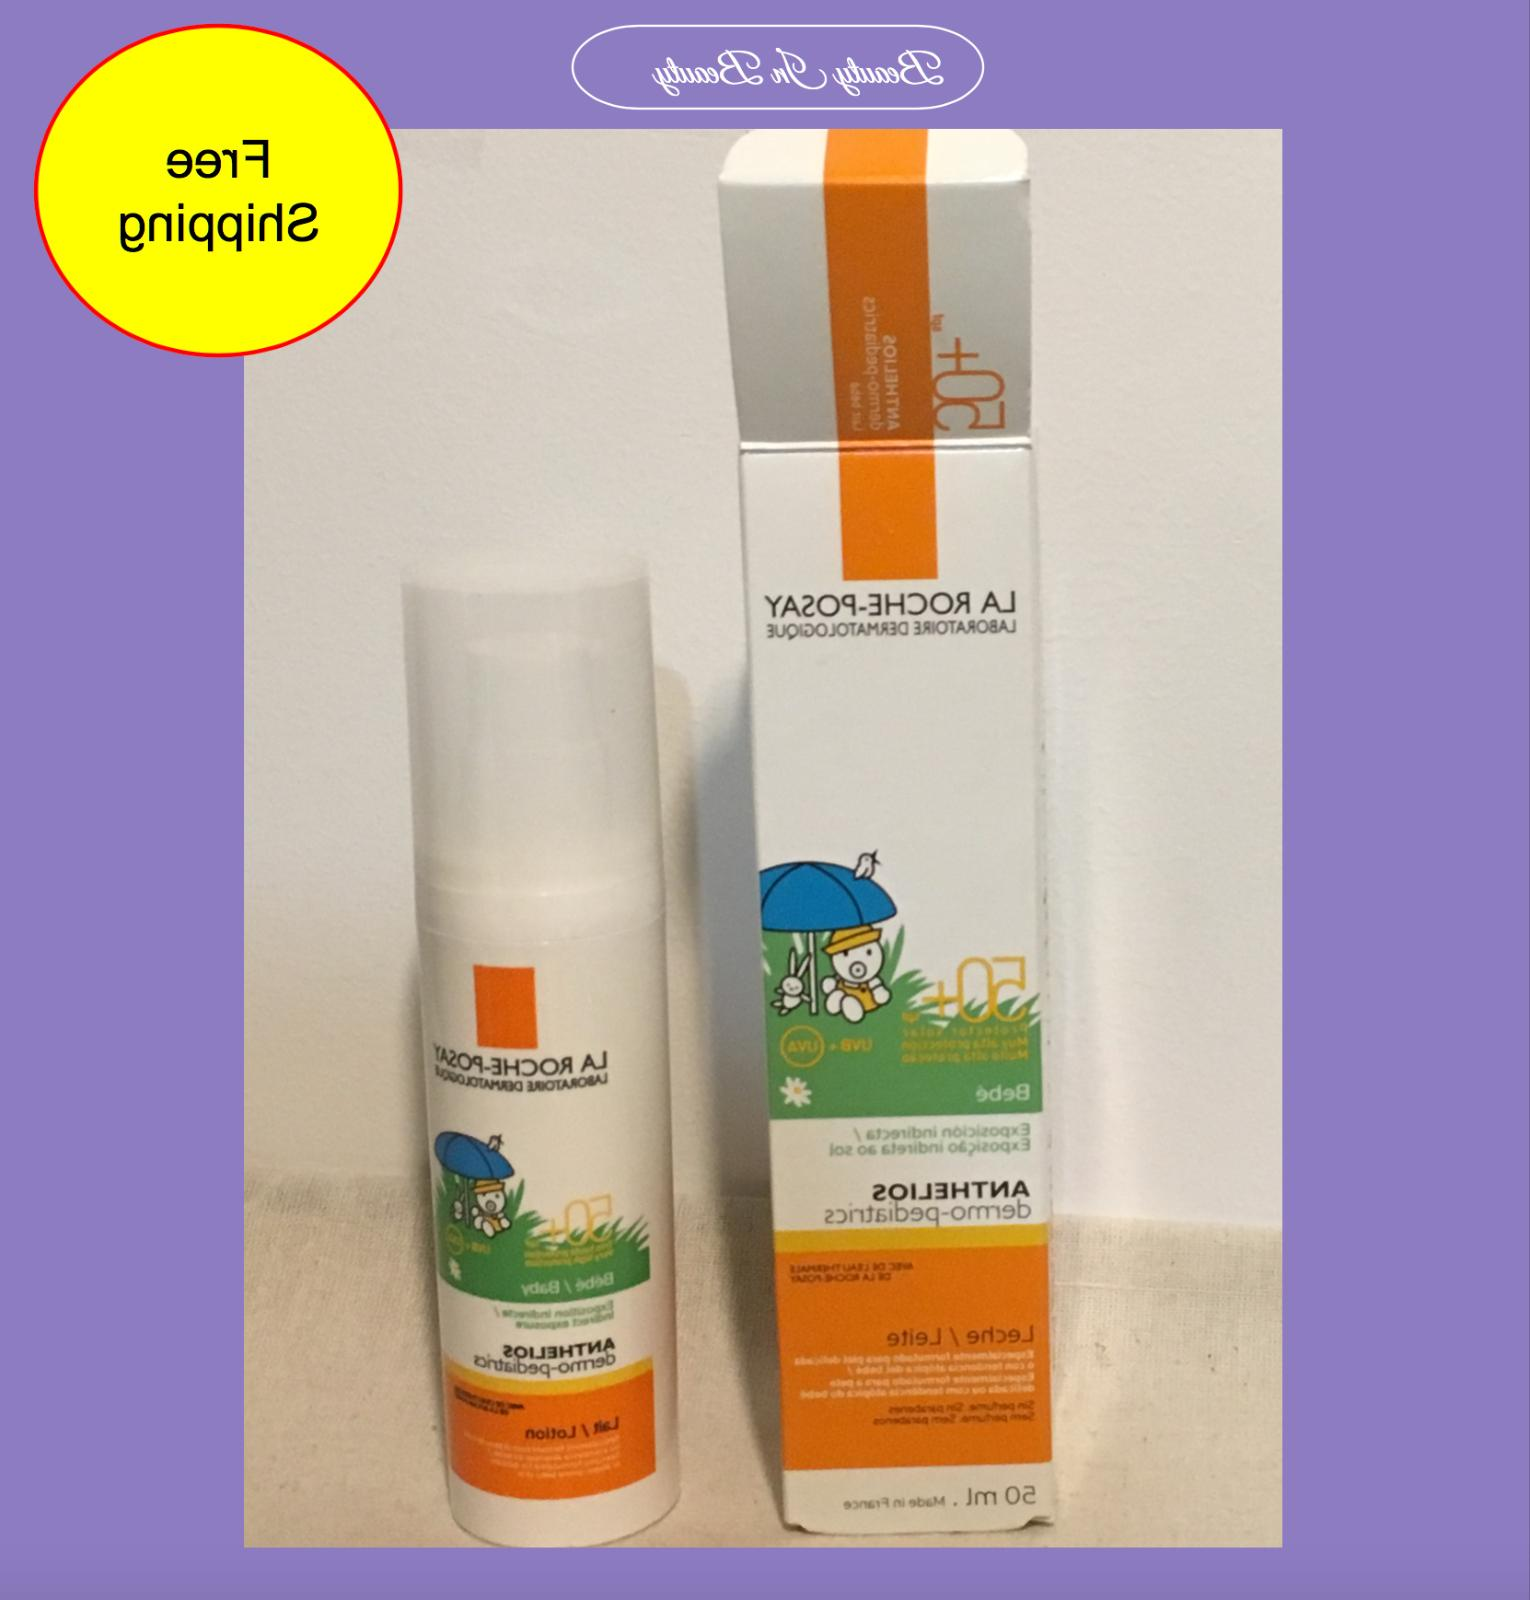 La Roche Posay Anthelios SPF 50 Lotion for Babies 50 Ml